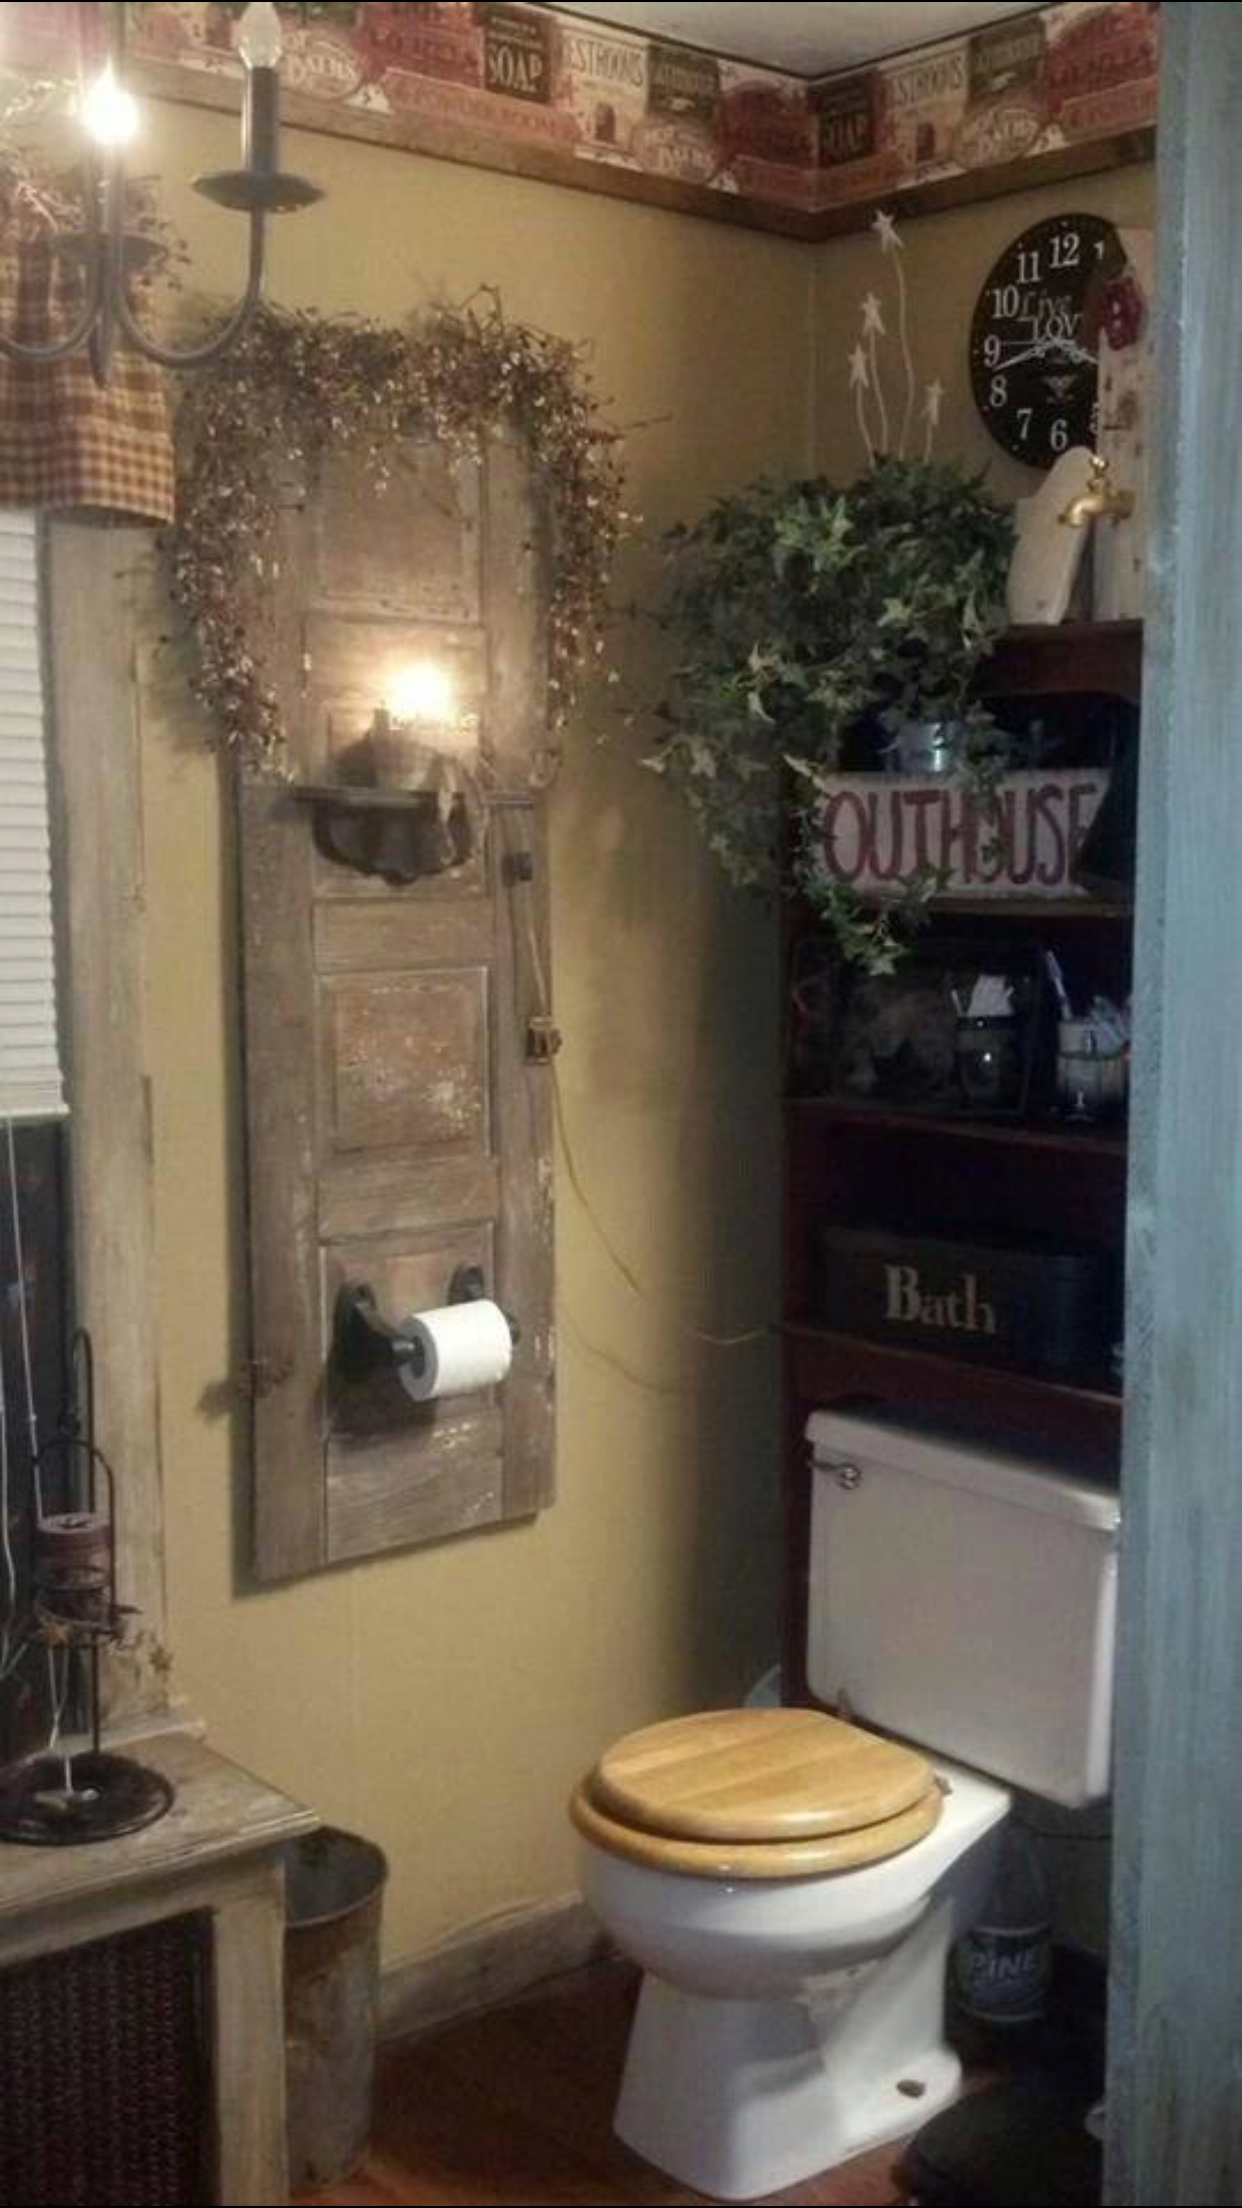 Primitive country bathroom ideas - Love This Idea For Hanging The Toilet Paper Holder Very Creative Like The Toilet Paper Holder And Shelves Above The Toilet